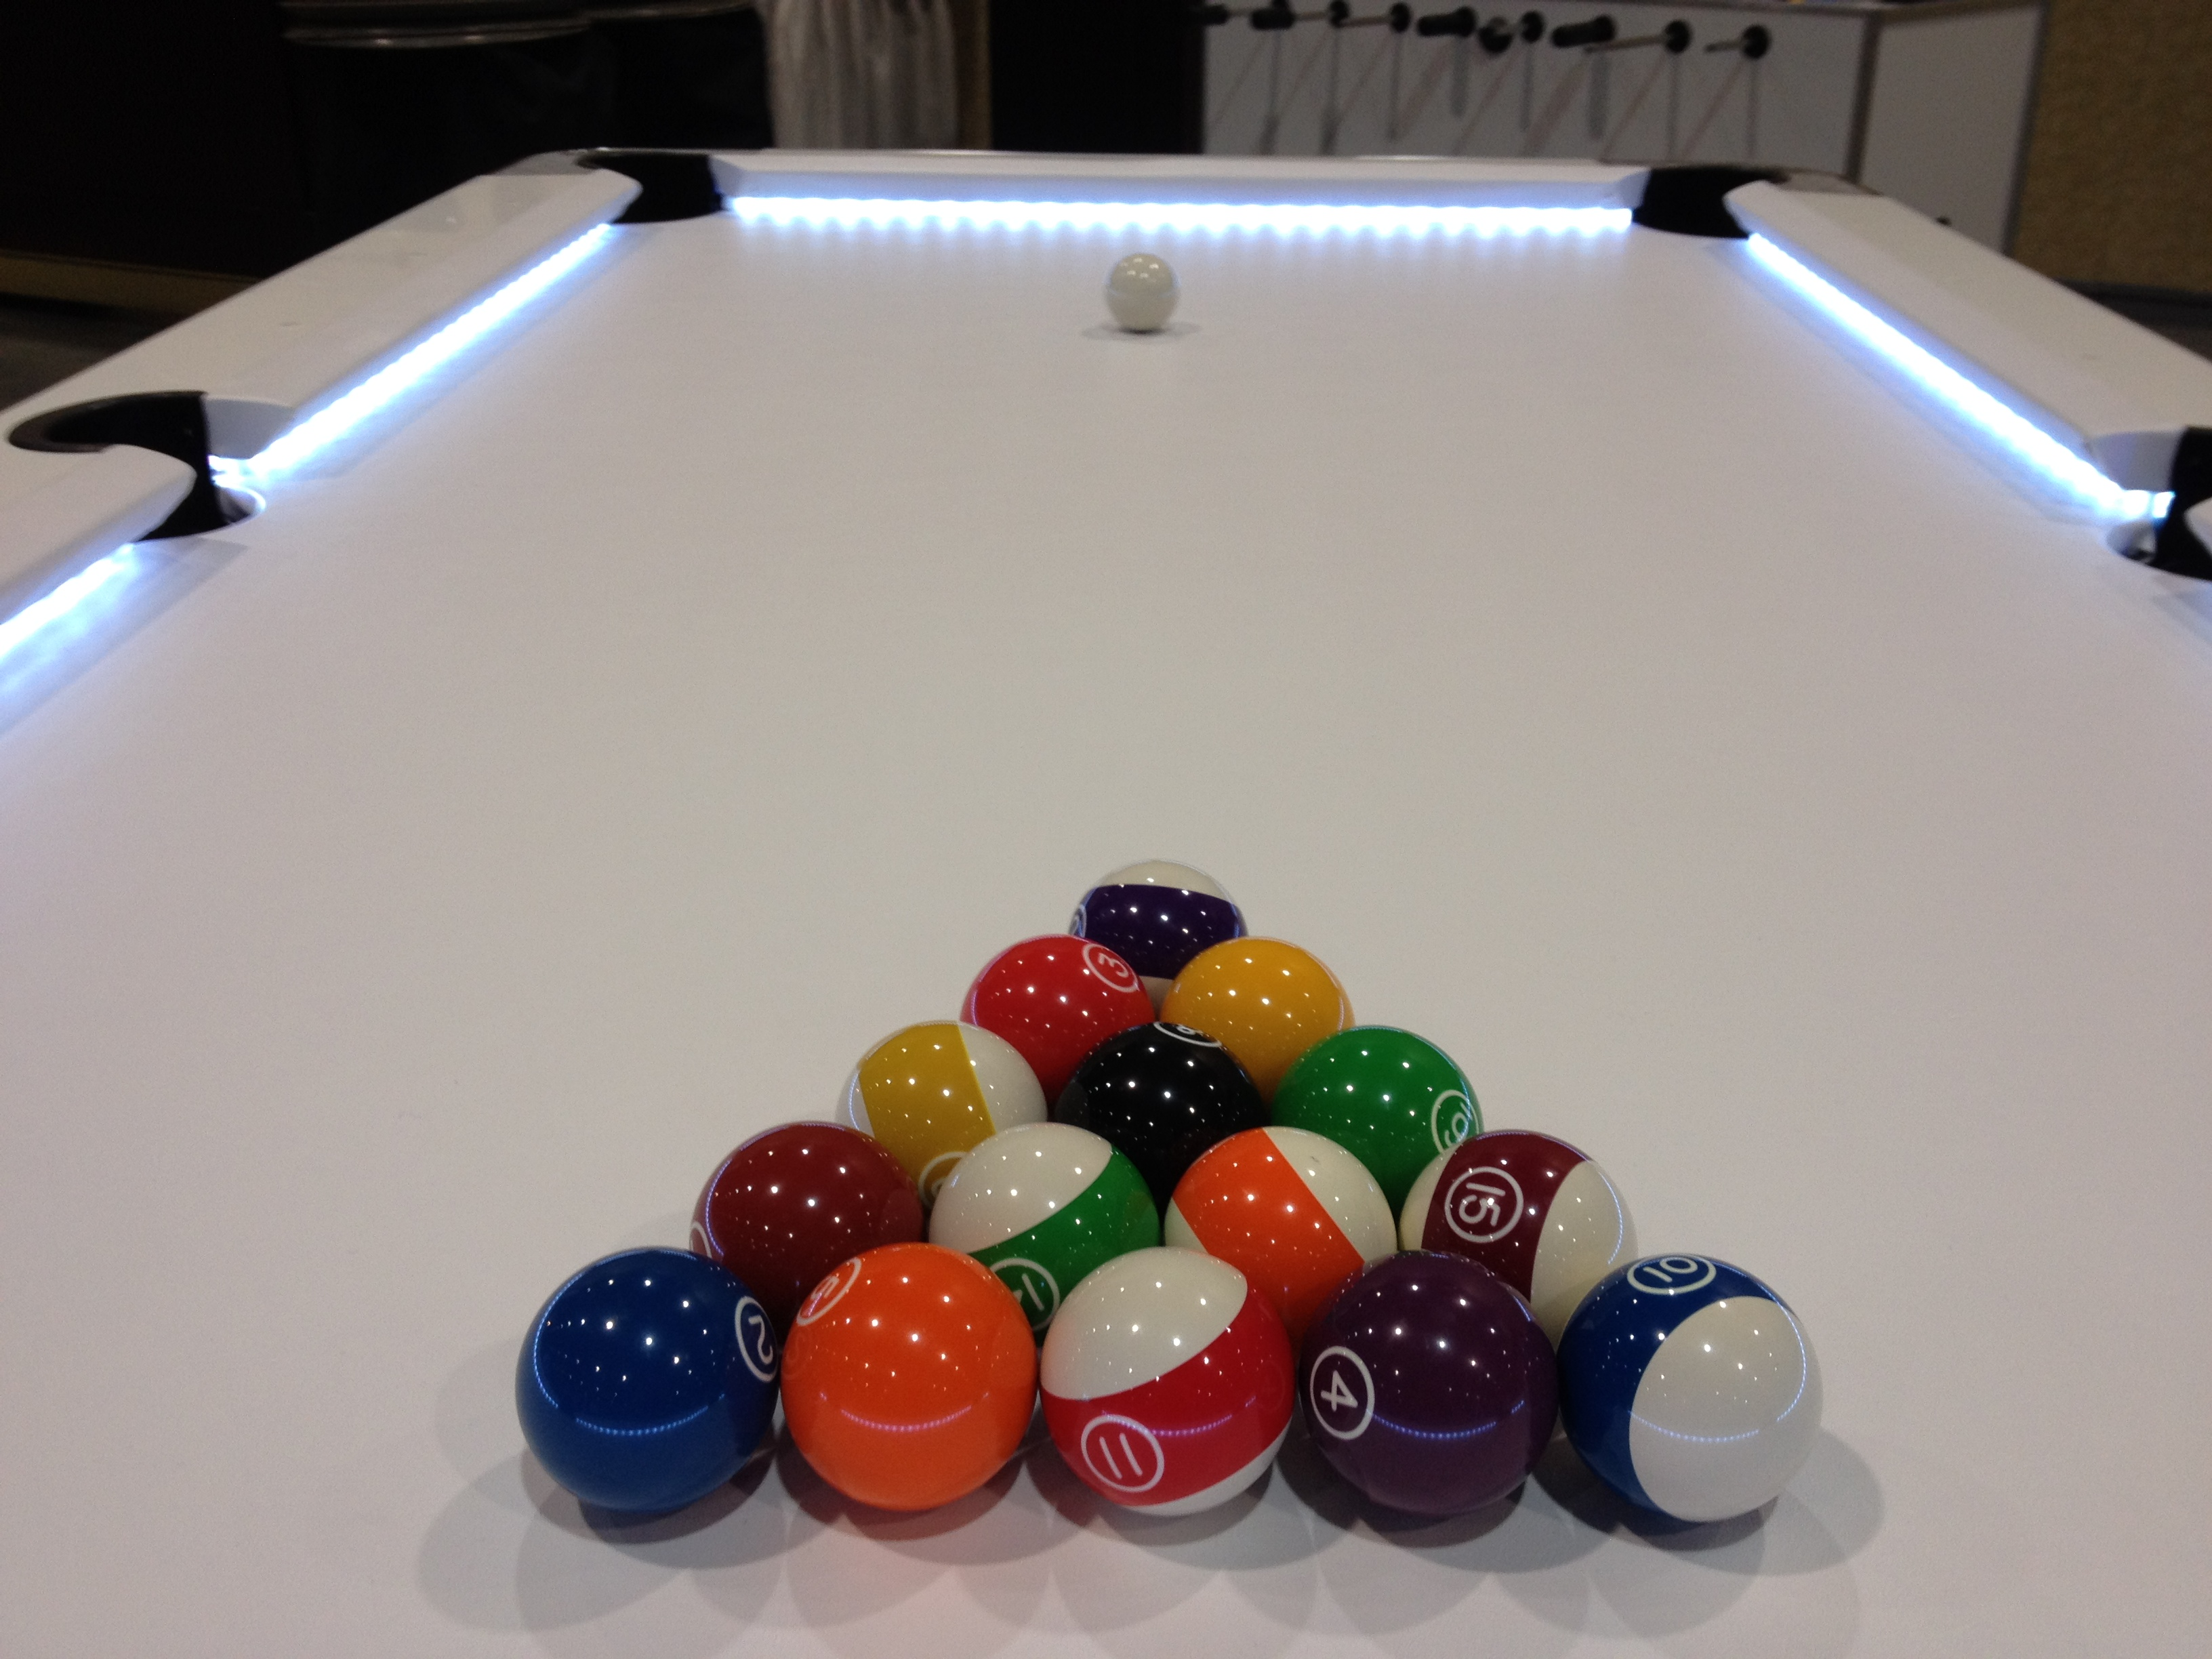 who makes this pool table with lights under the cushions